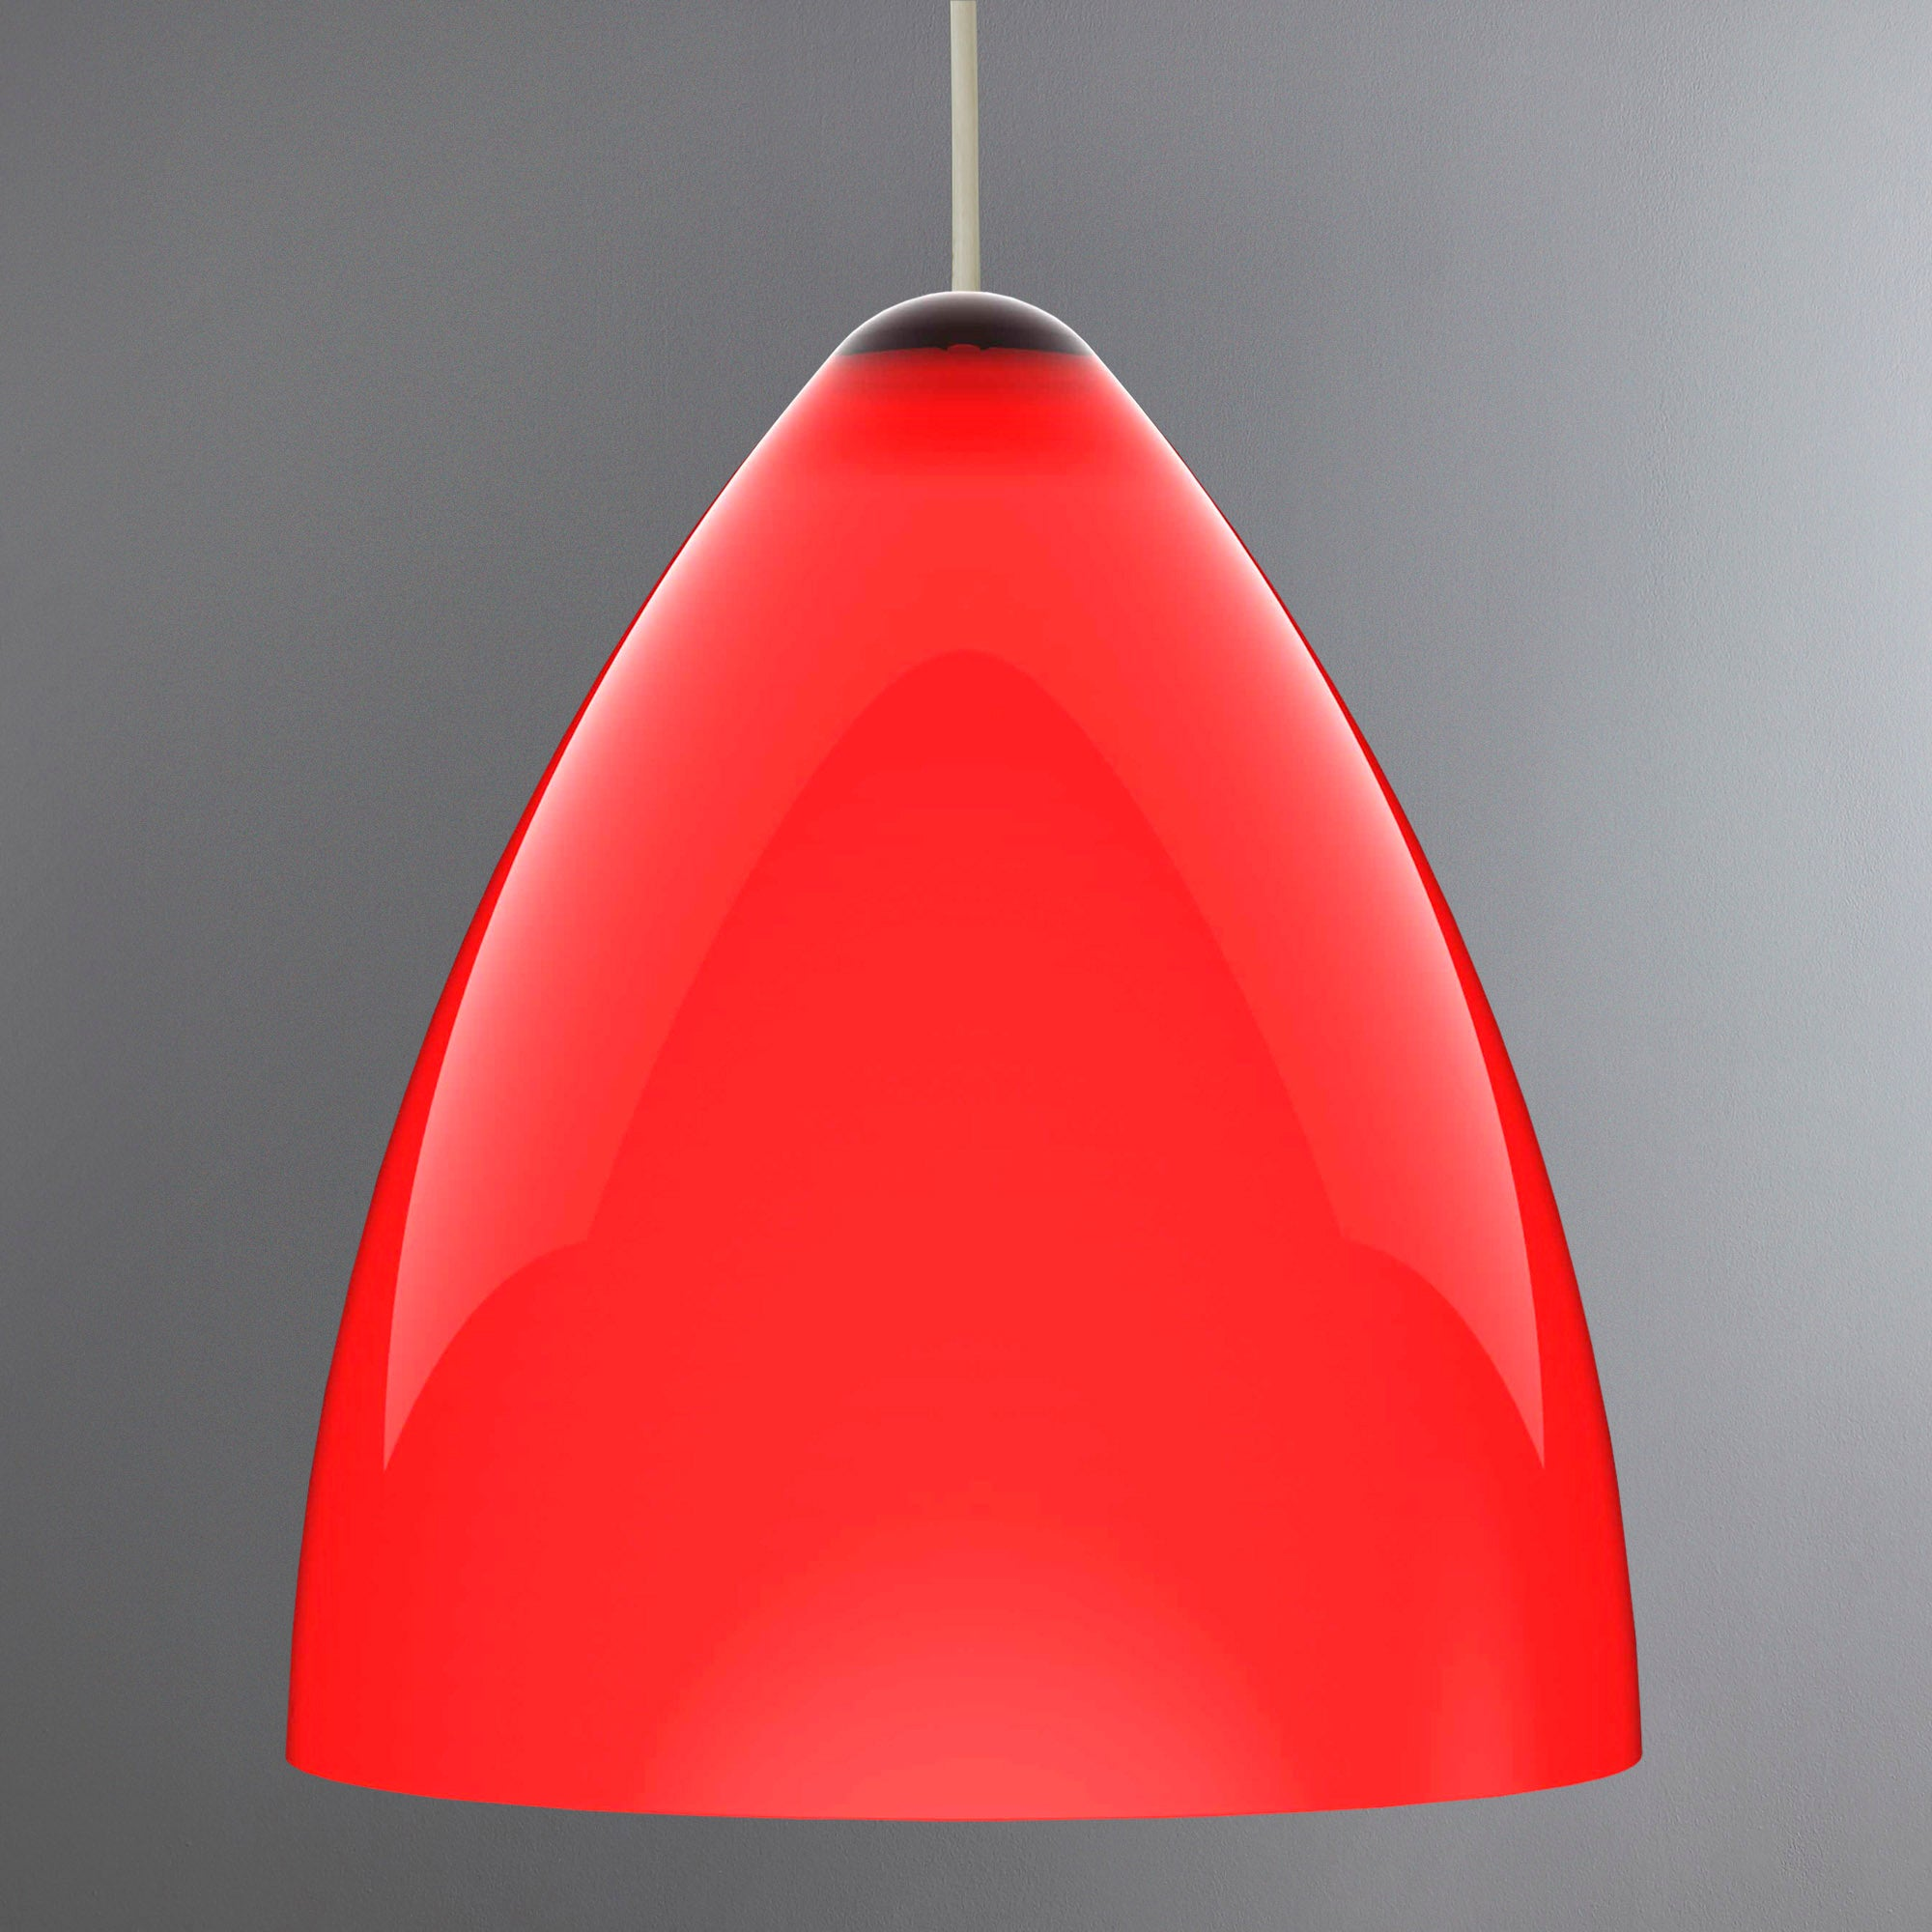 Photo of Funk 22 red light shade red